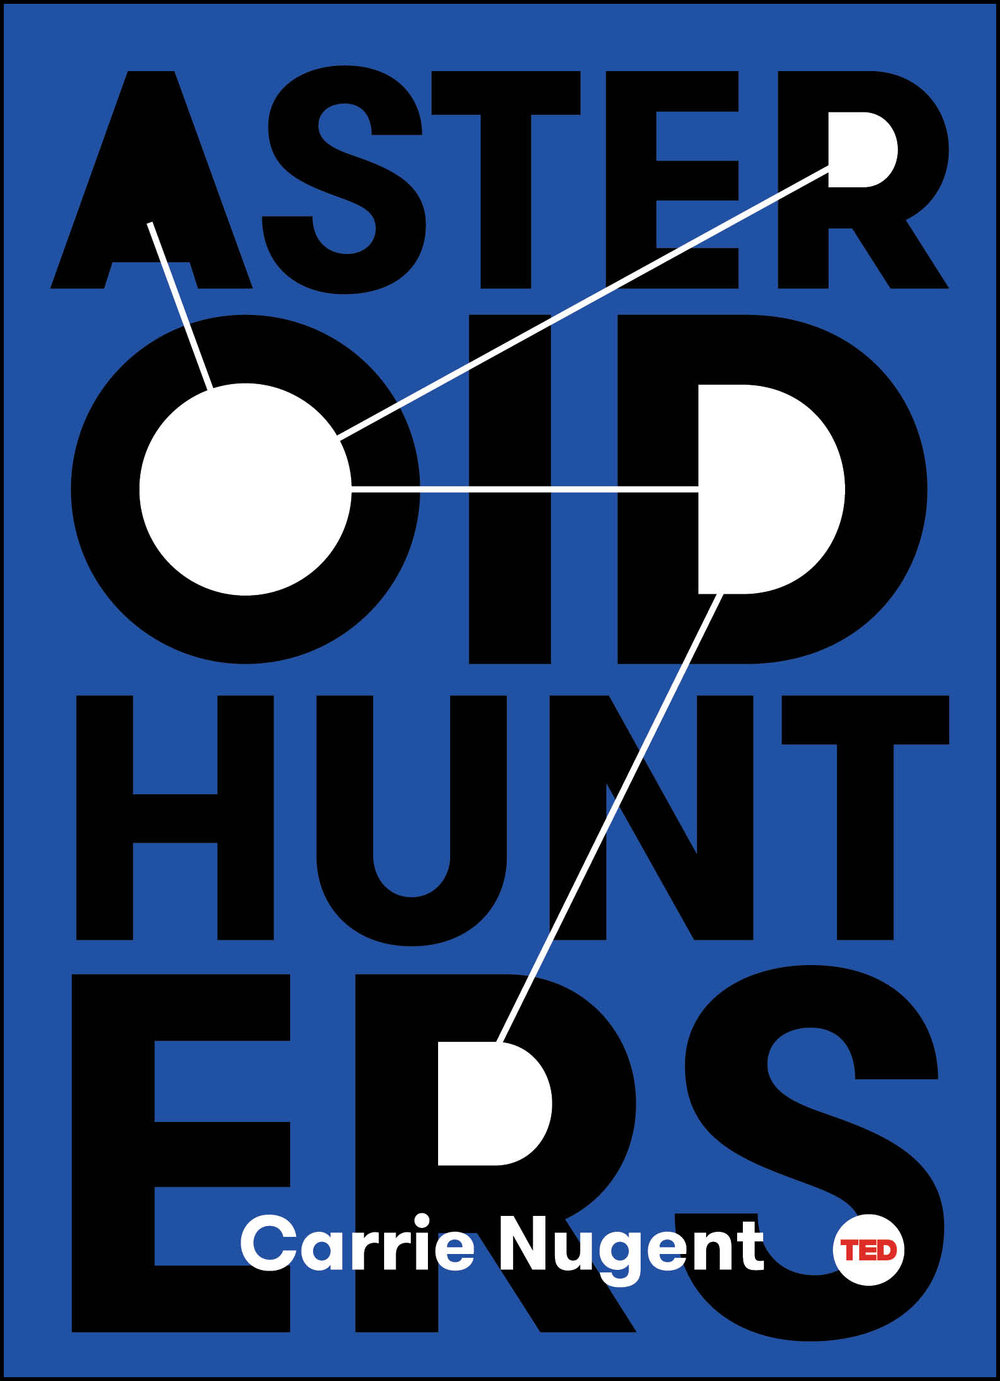 "As part of the 2016 TED Fellows class, I got to meet cool people and I got to talk about asteroids. My TED talk is now online (watch it here!) and the companion book, ""Asteroid Hunters"", by me, is now available in the US, UK, Canada, Australia, and India. There's also e-book and audiobook versions. This bonus episode contains an excerpt from ""Asteroid Hunters"". ""Asteroid Hunters""  is available at Amazon, Barnes & Noble, IndieBound, and as an iBook. An audiobook version will also be available."